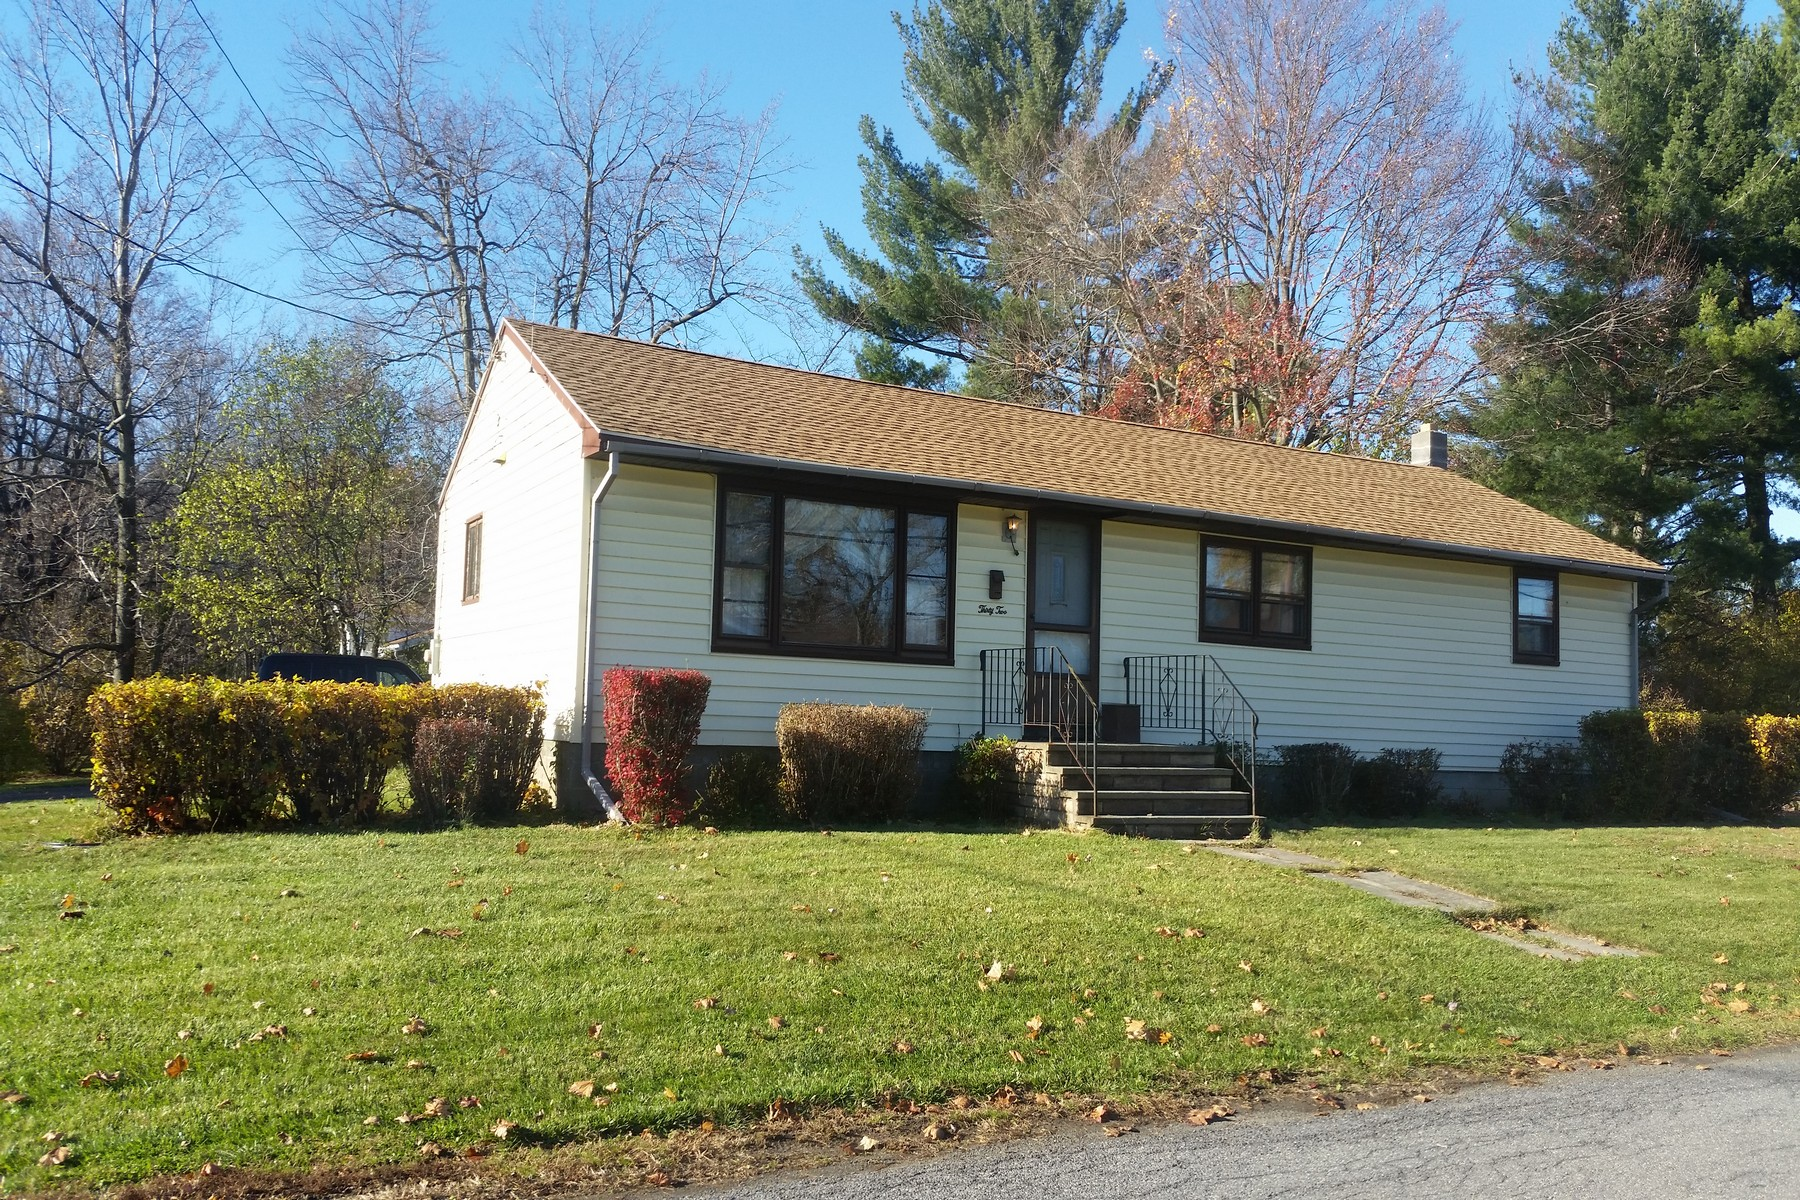 Single Family Home for Sale at Weekend Warrior Special 32 Corliss Av Rensselaer, New York 12144 United States